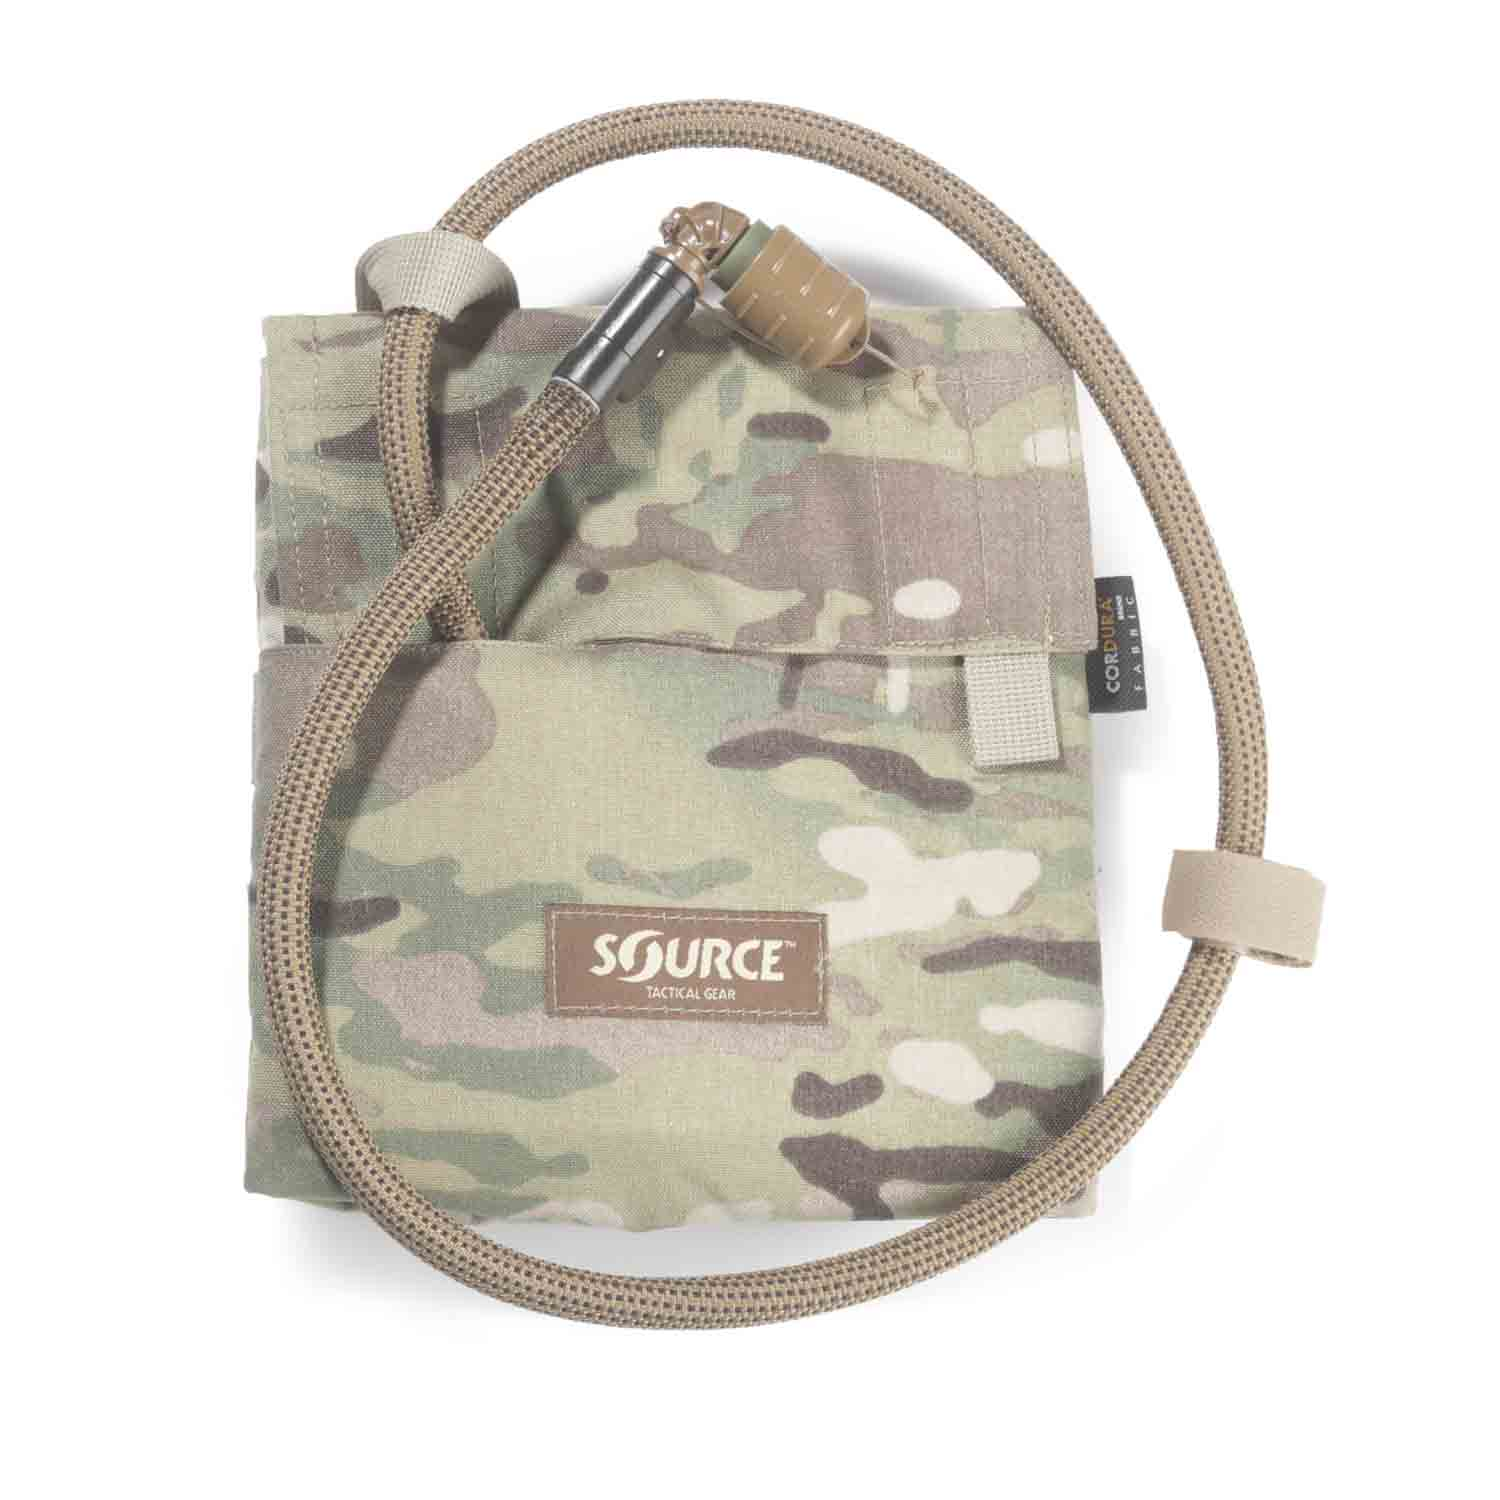 Source Tactical 1 Liter Kangaroo Hydration System